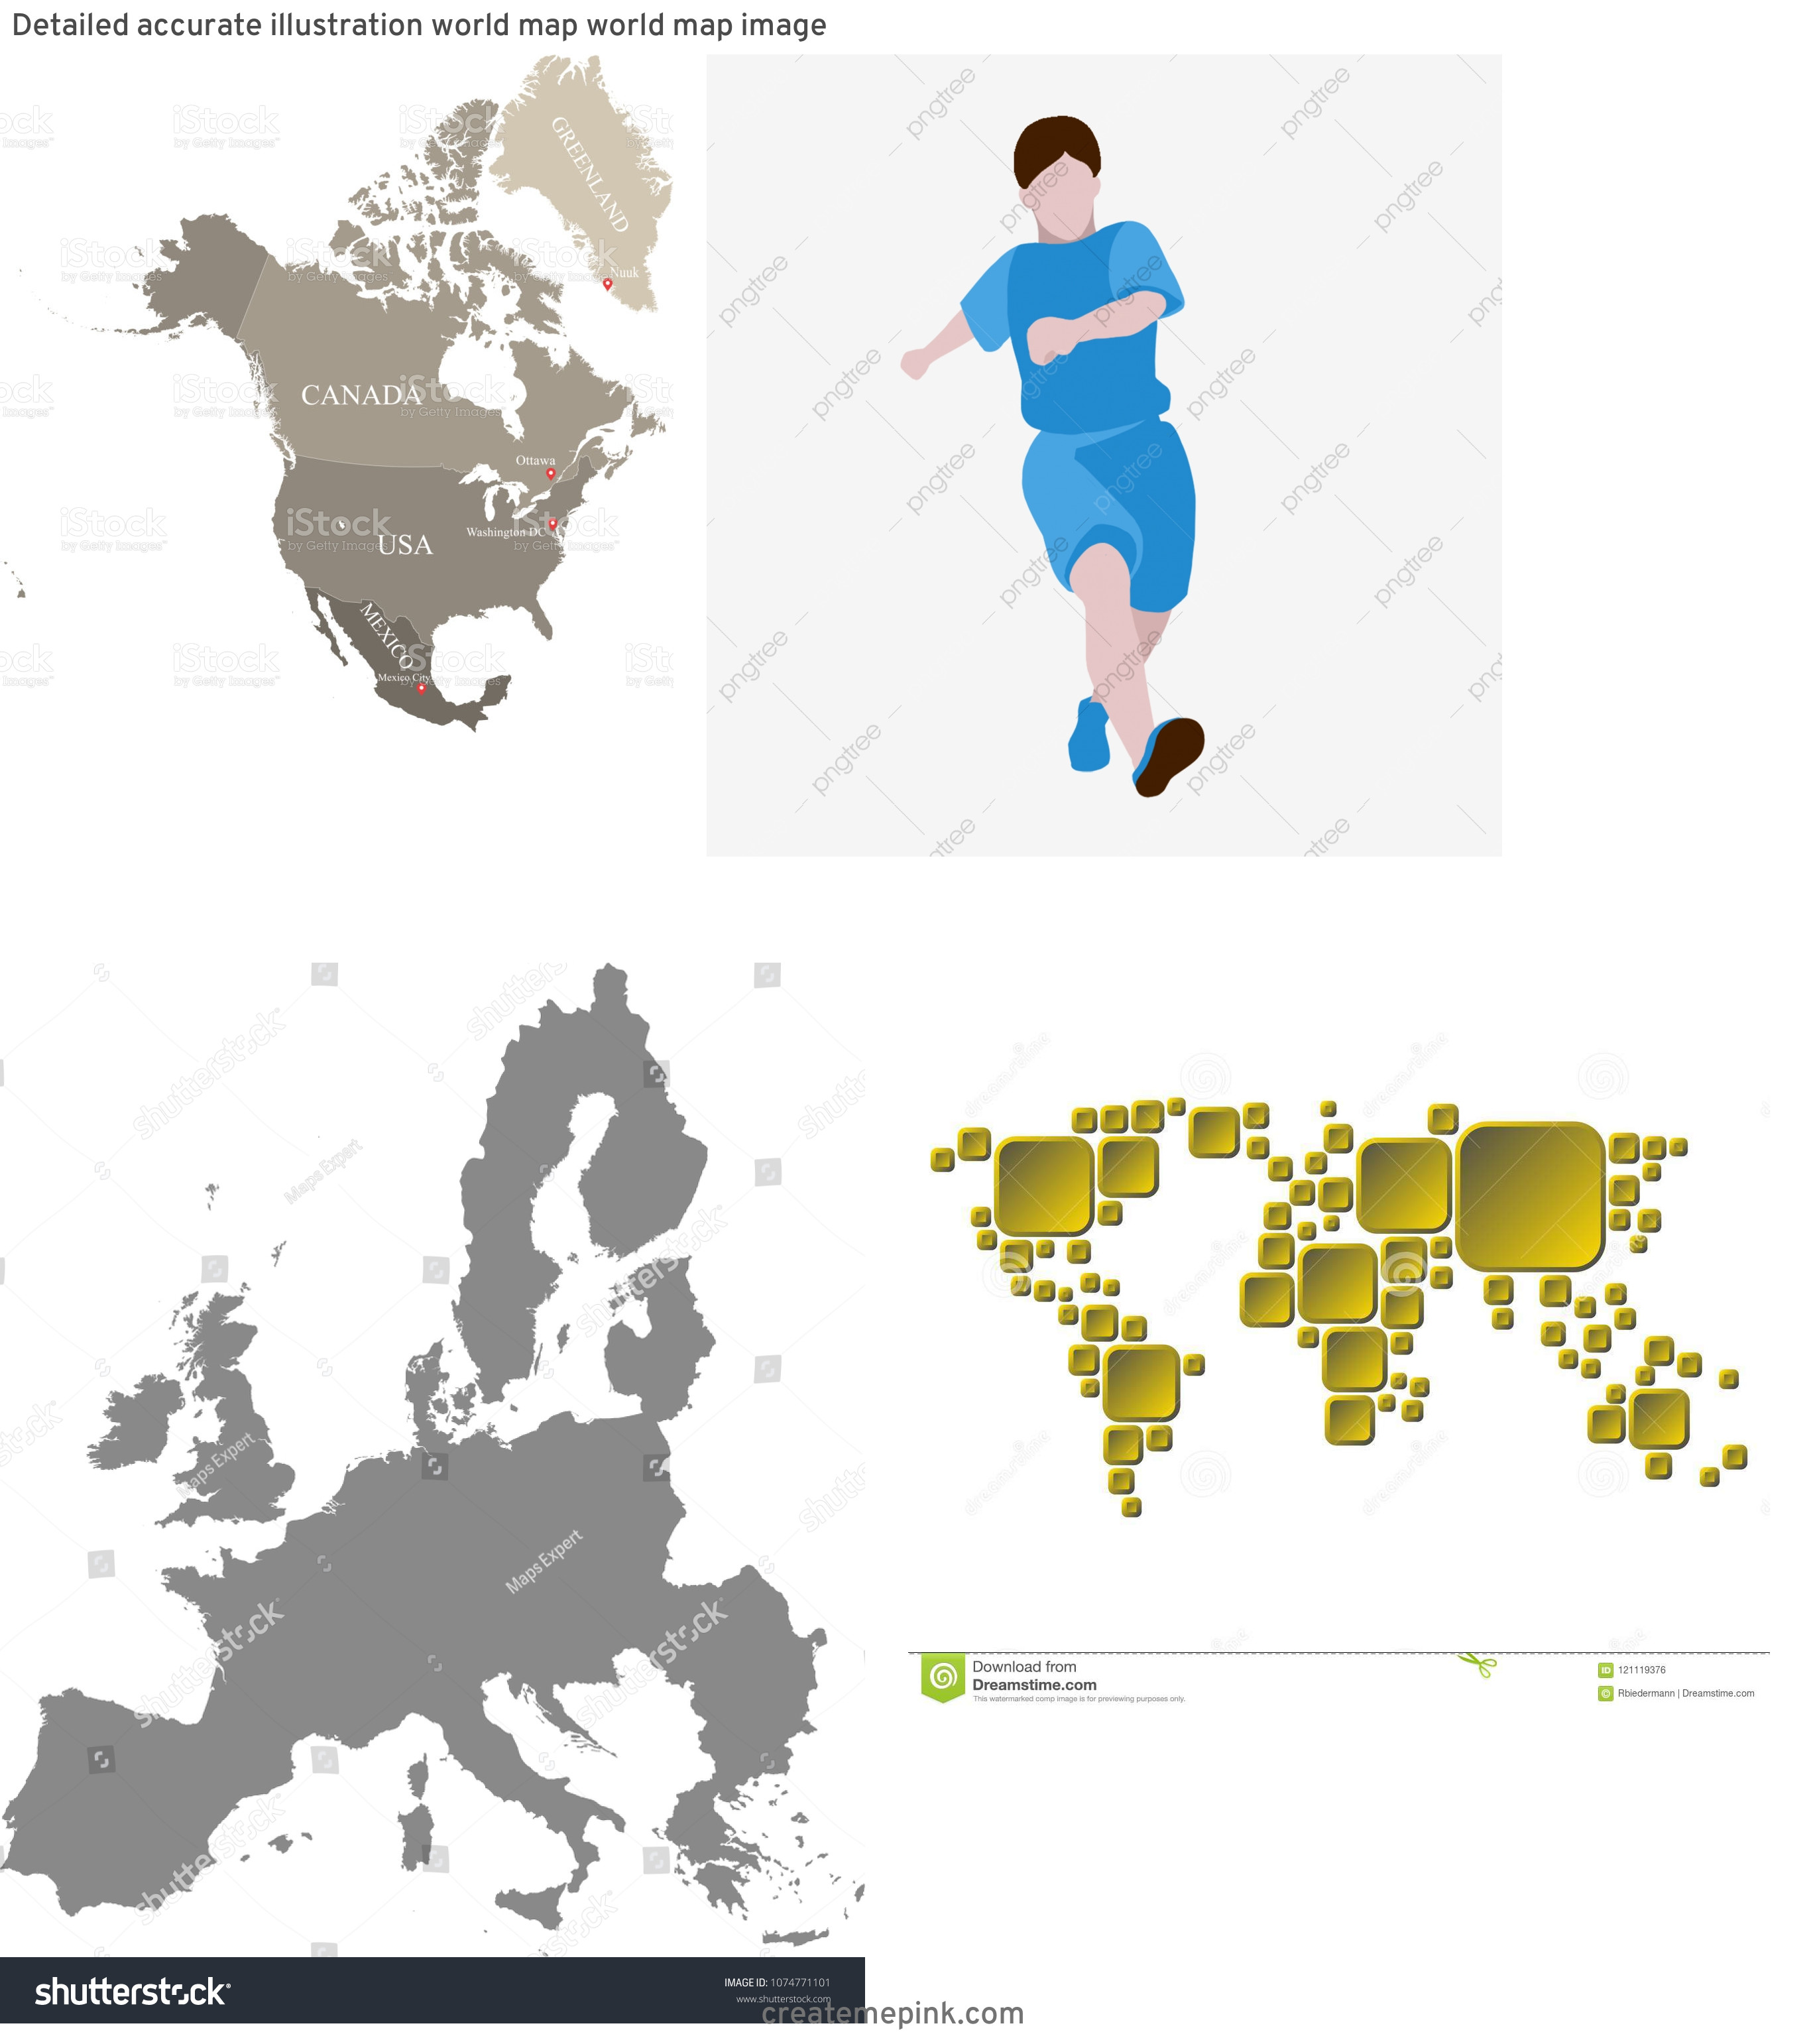 Accurate World Map Vector: Detailed Accurate Illustration World Map World Map Image